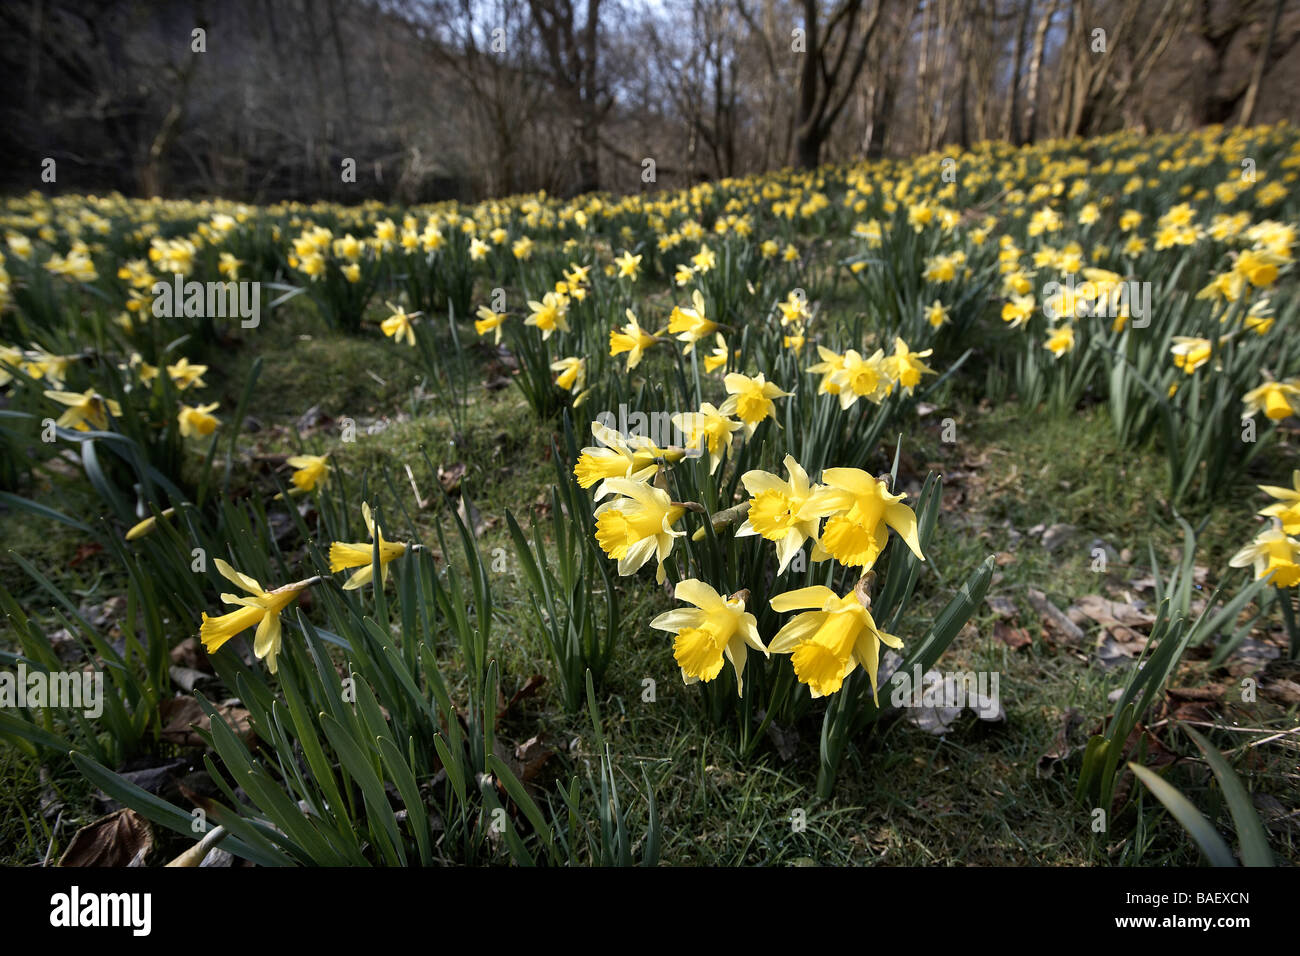 narcissus pseudonarcissus uk stock photos narcissus wild daffodils narcissus pseudonarcissus of farndale uk stock image